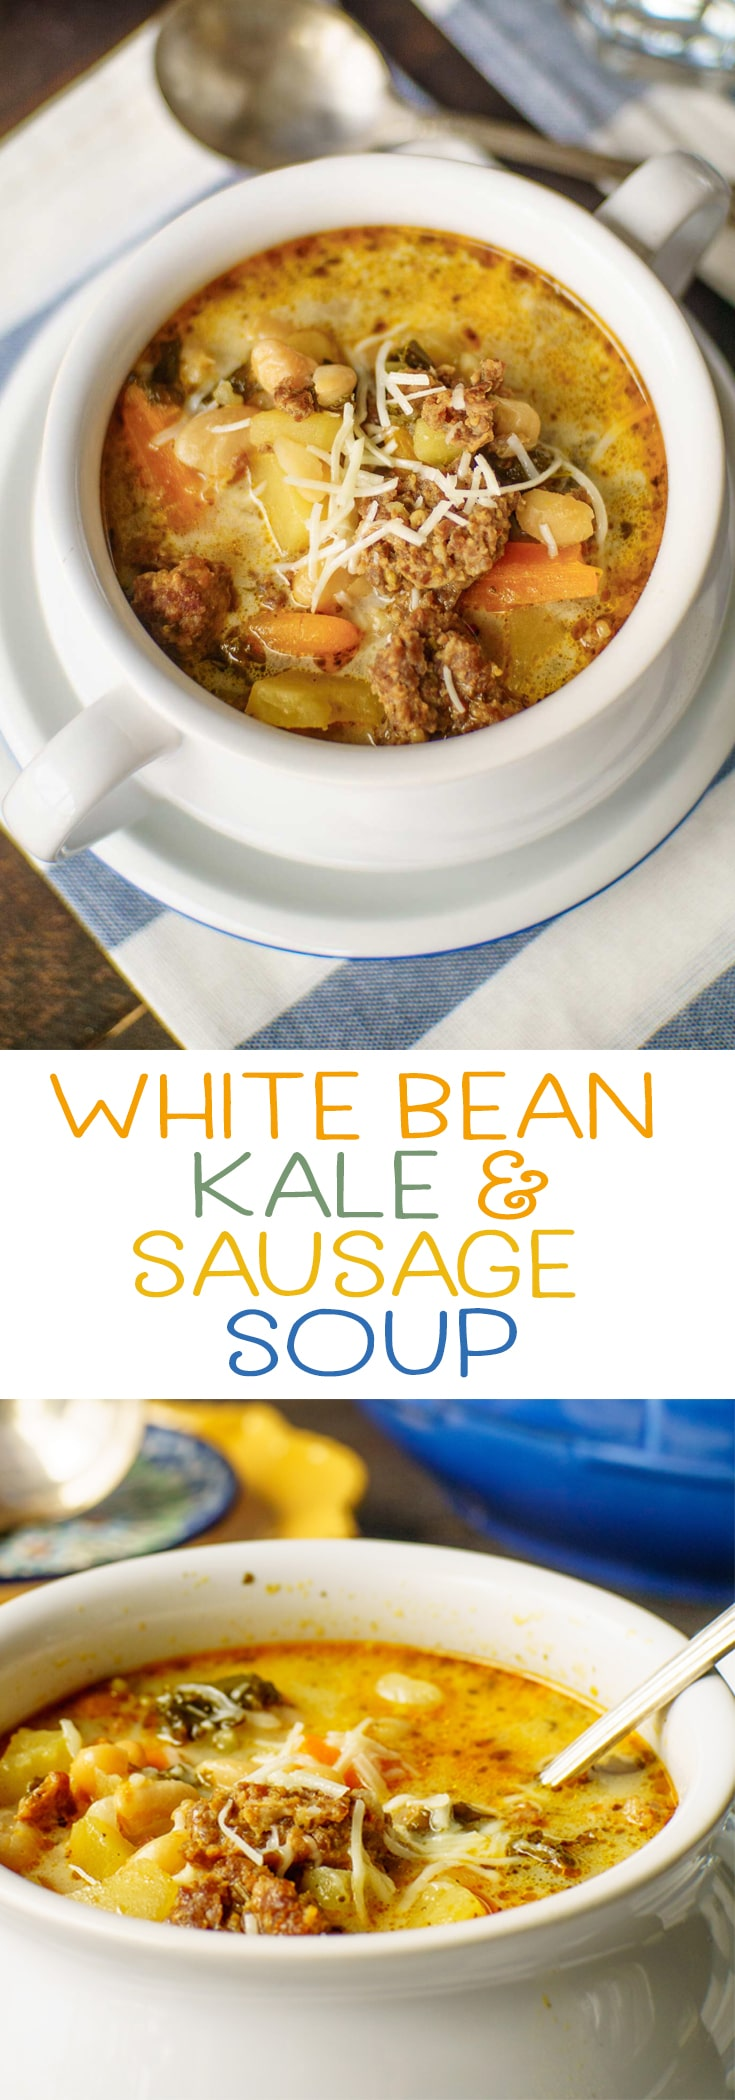 This white bean kale and sausage soup is adapted from that favorite Italian Olive Garden soup you love so much. Filled with sausage, white beans, kale and potatoes - one of our favorite comfort food recipes. Save time by making it in the instant pot! This easy recipe will become one of your favorite weeknight meals. via @mrsmajorhoff